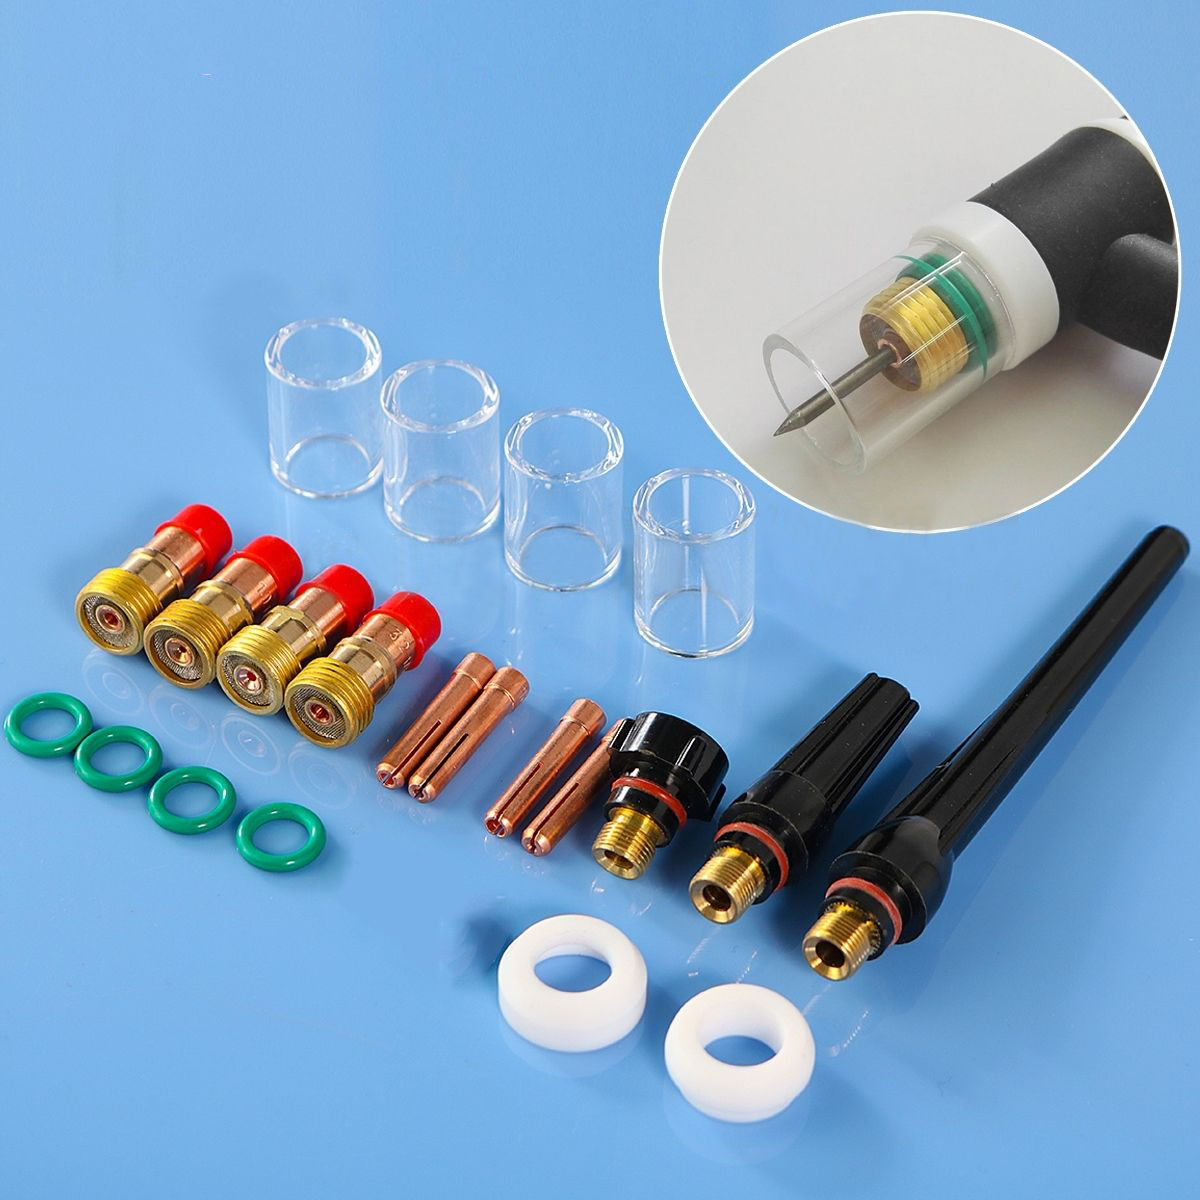 21pcs Practical TIG Welding Kit Stubby Gas Lens #10 Pyrex Glass Cup Kit for WP-17/18/26 Welding Torch Mayitr Welding Accessories